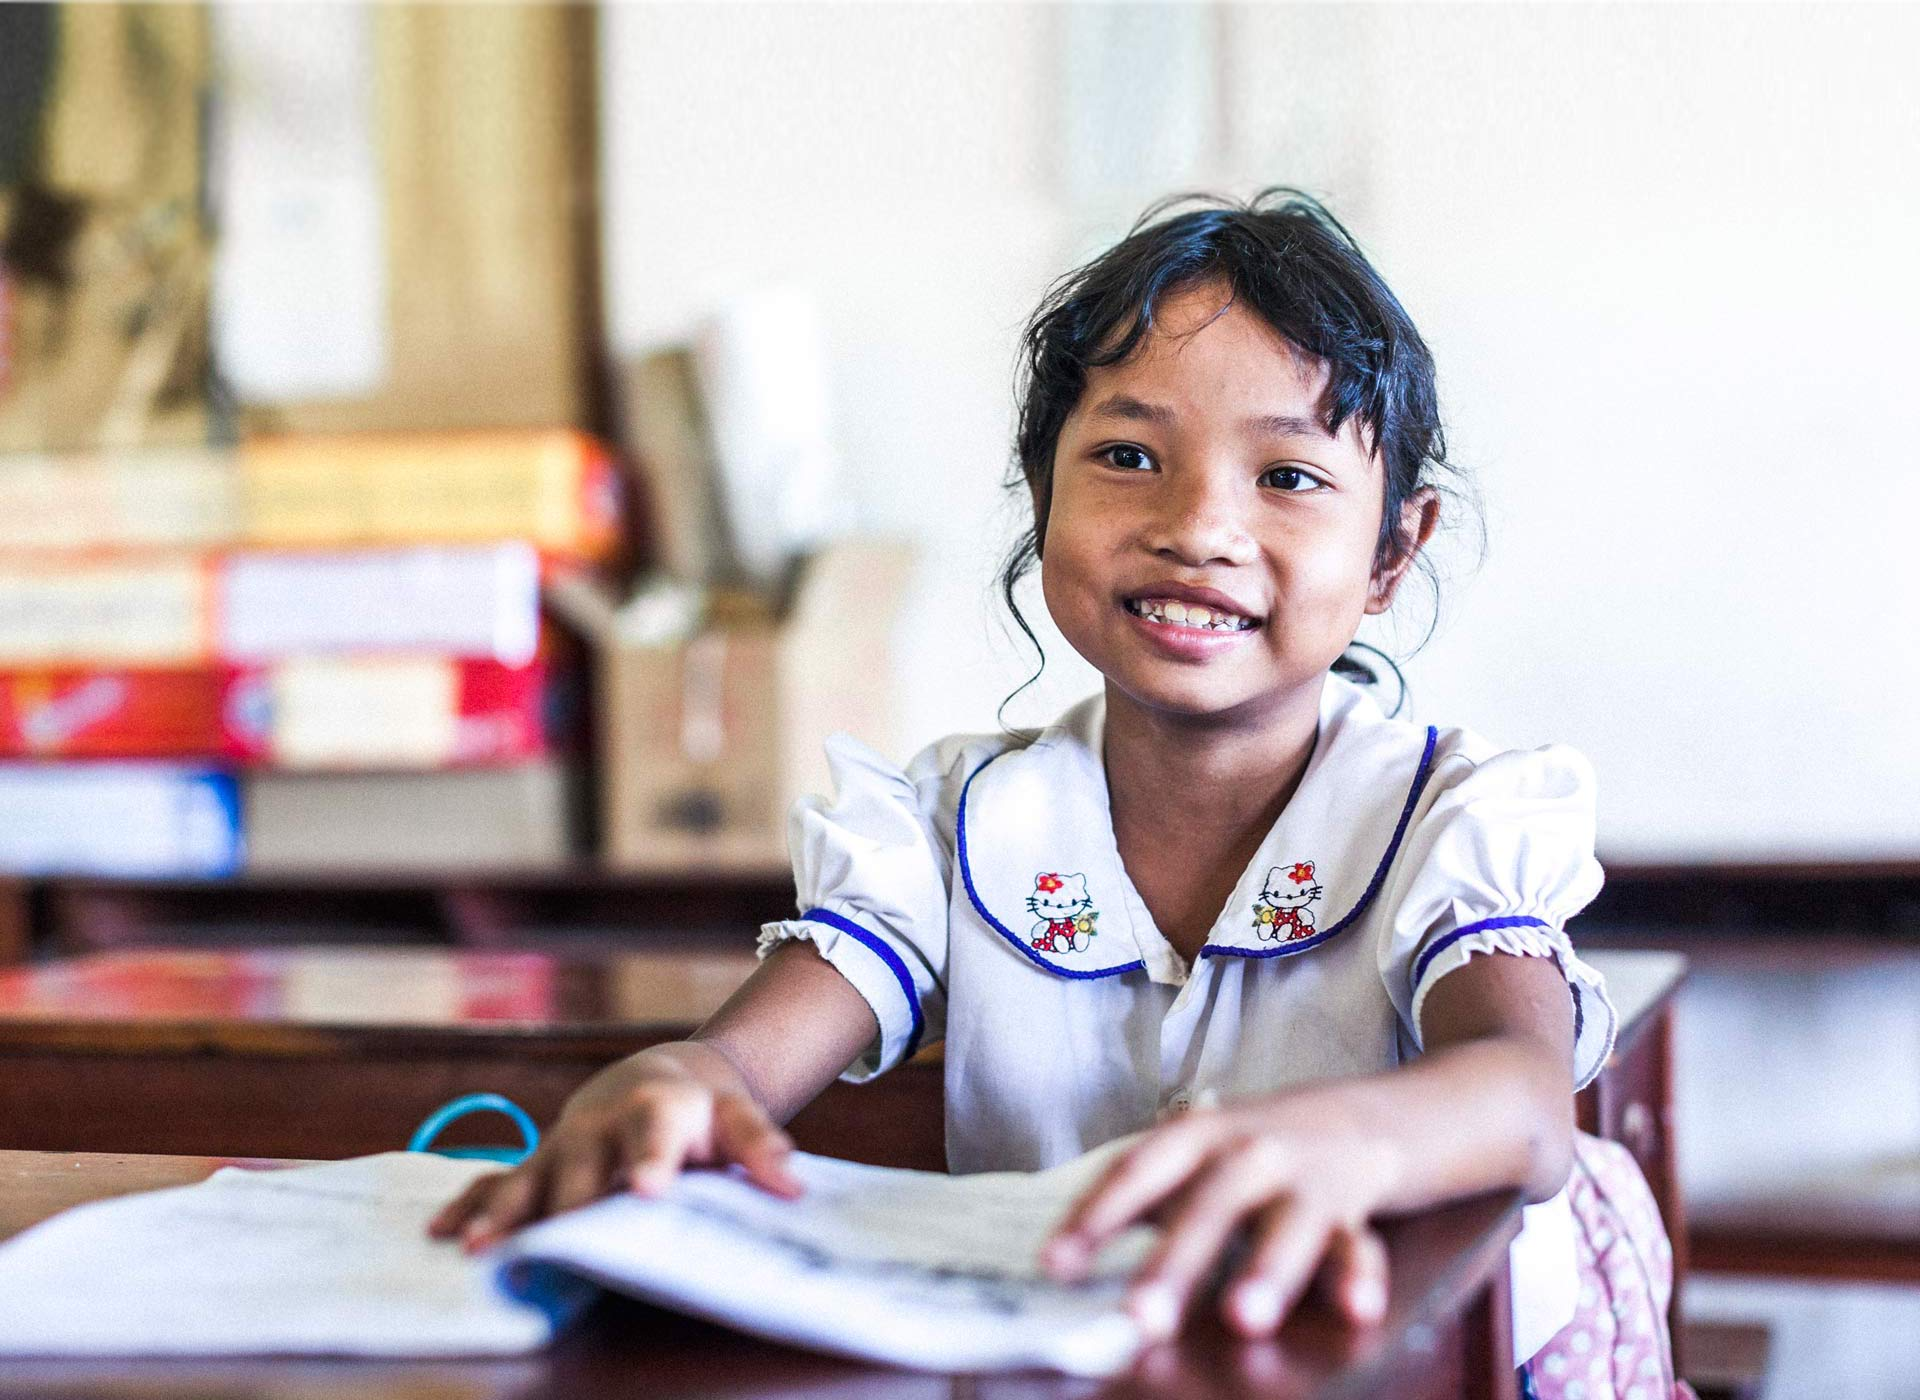 Childrens-Future-Girl-Class-Charity-Education-Nonprofit-Cambodia.jpg